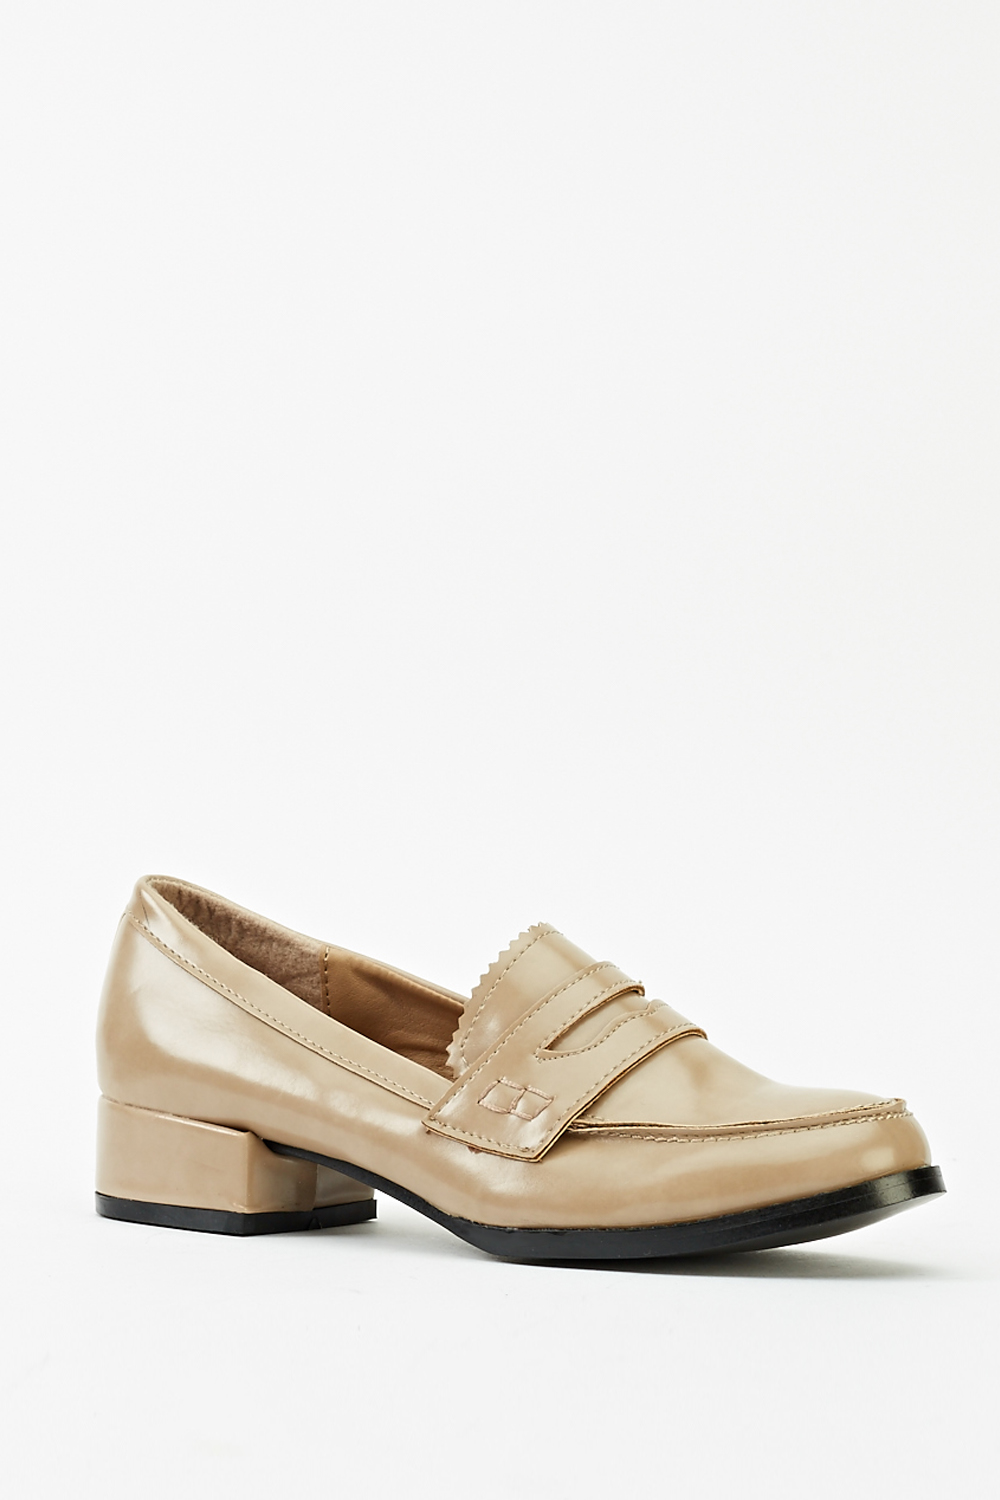 dd55843600afc Low Block Heel Loafers - Just £5